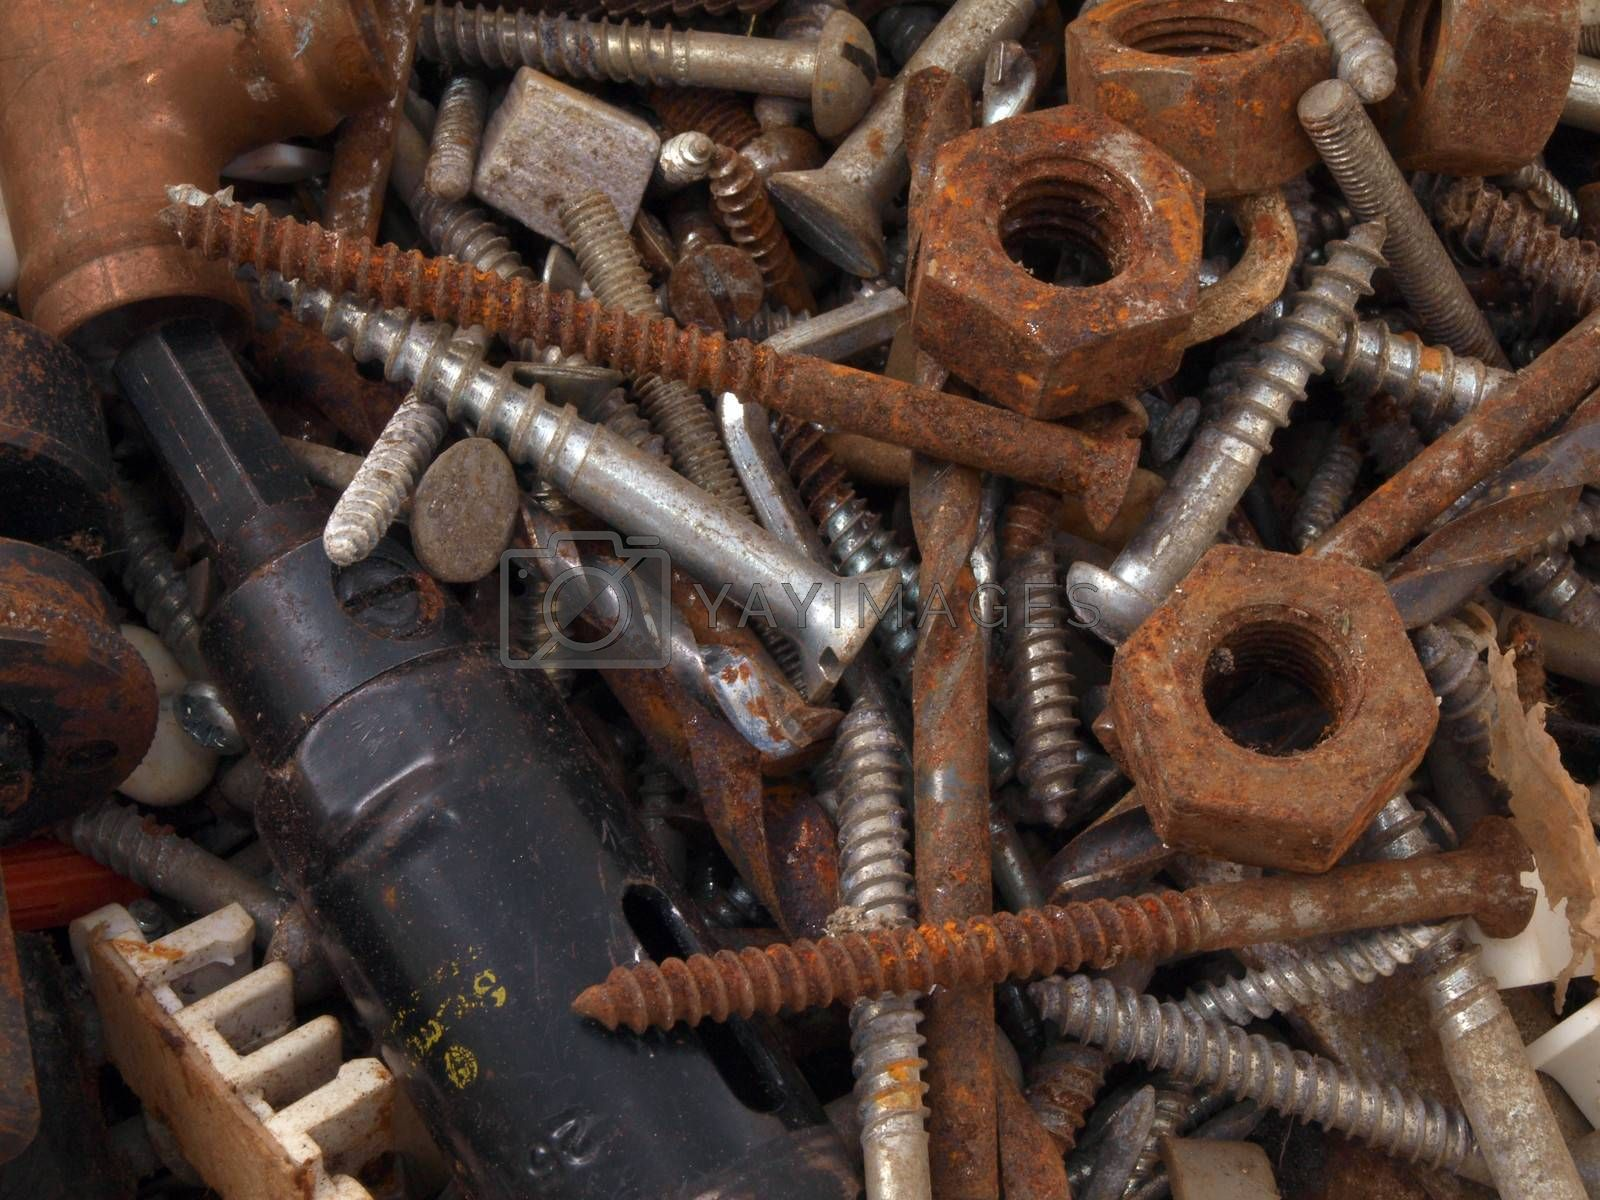 Close up of rusty nuts and bolts.